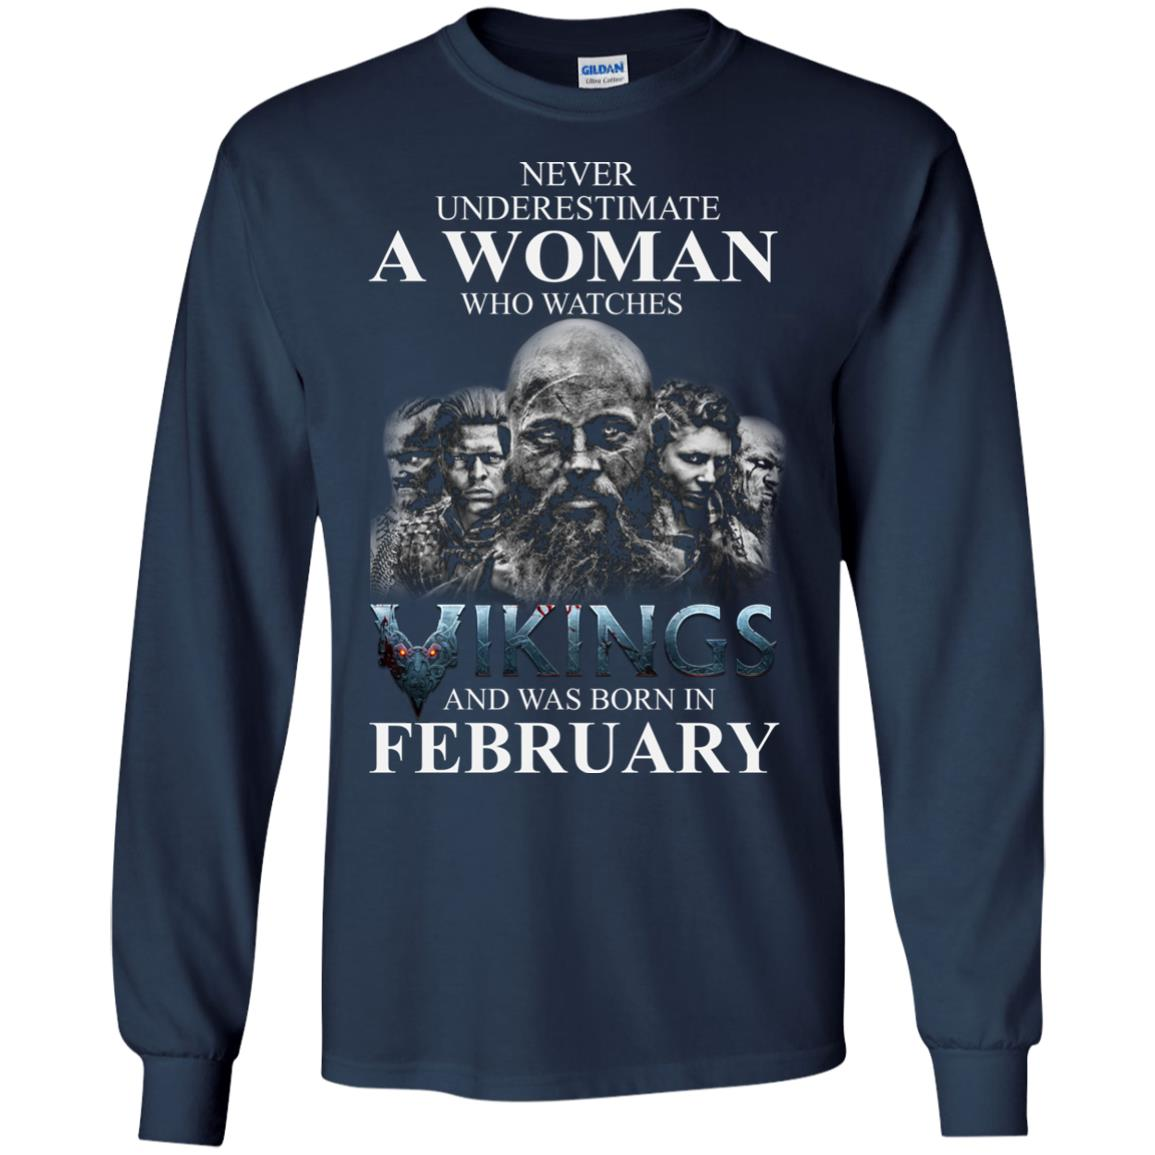 image 1342 - Never Underestimate A woman who watches Vikings and was born in February shirt